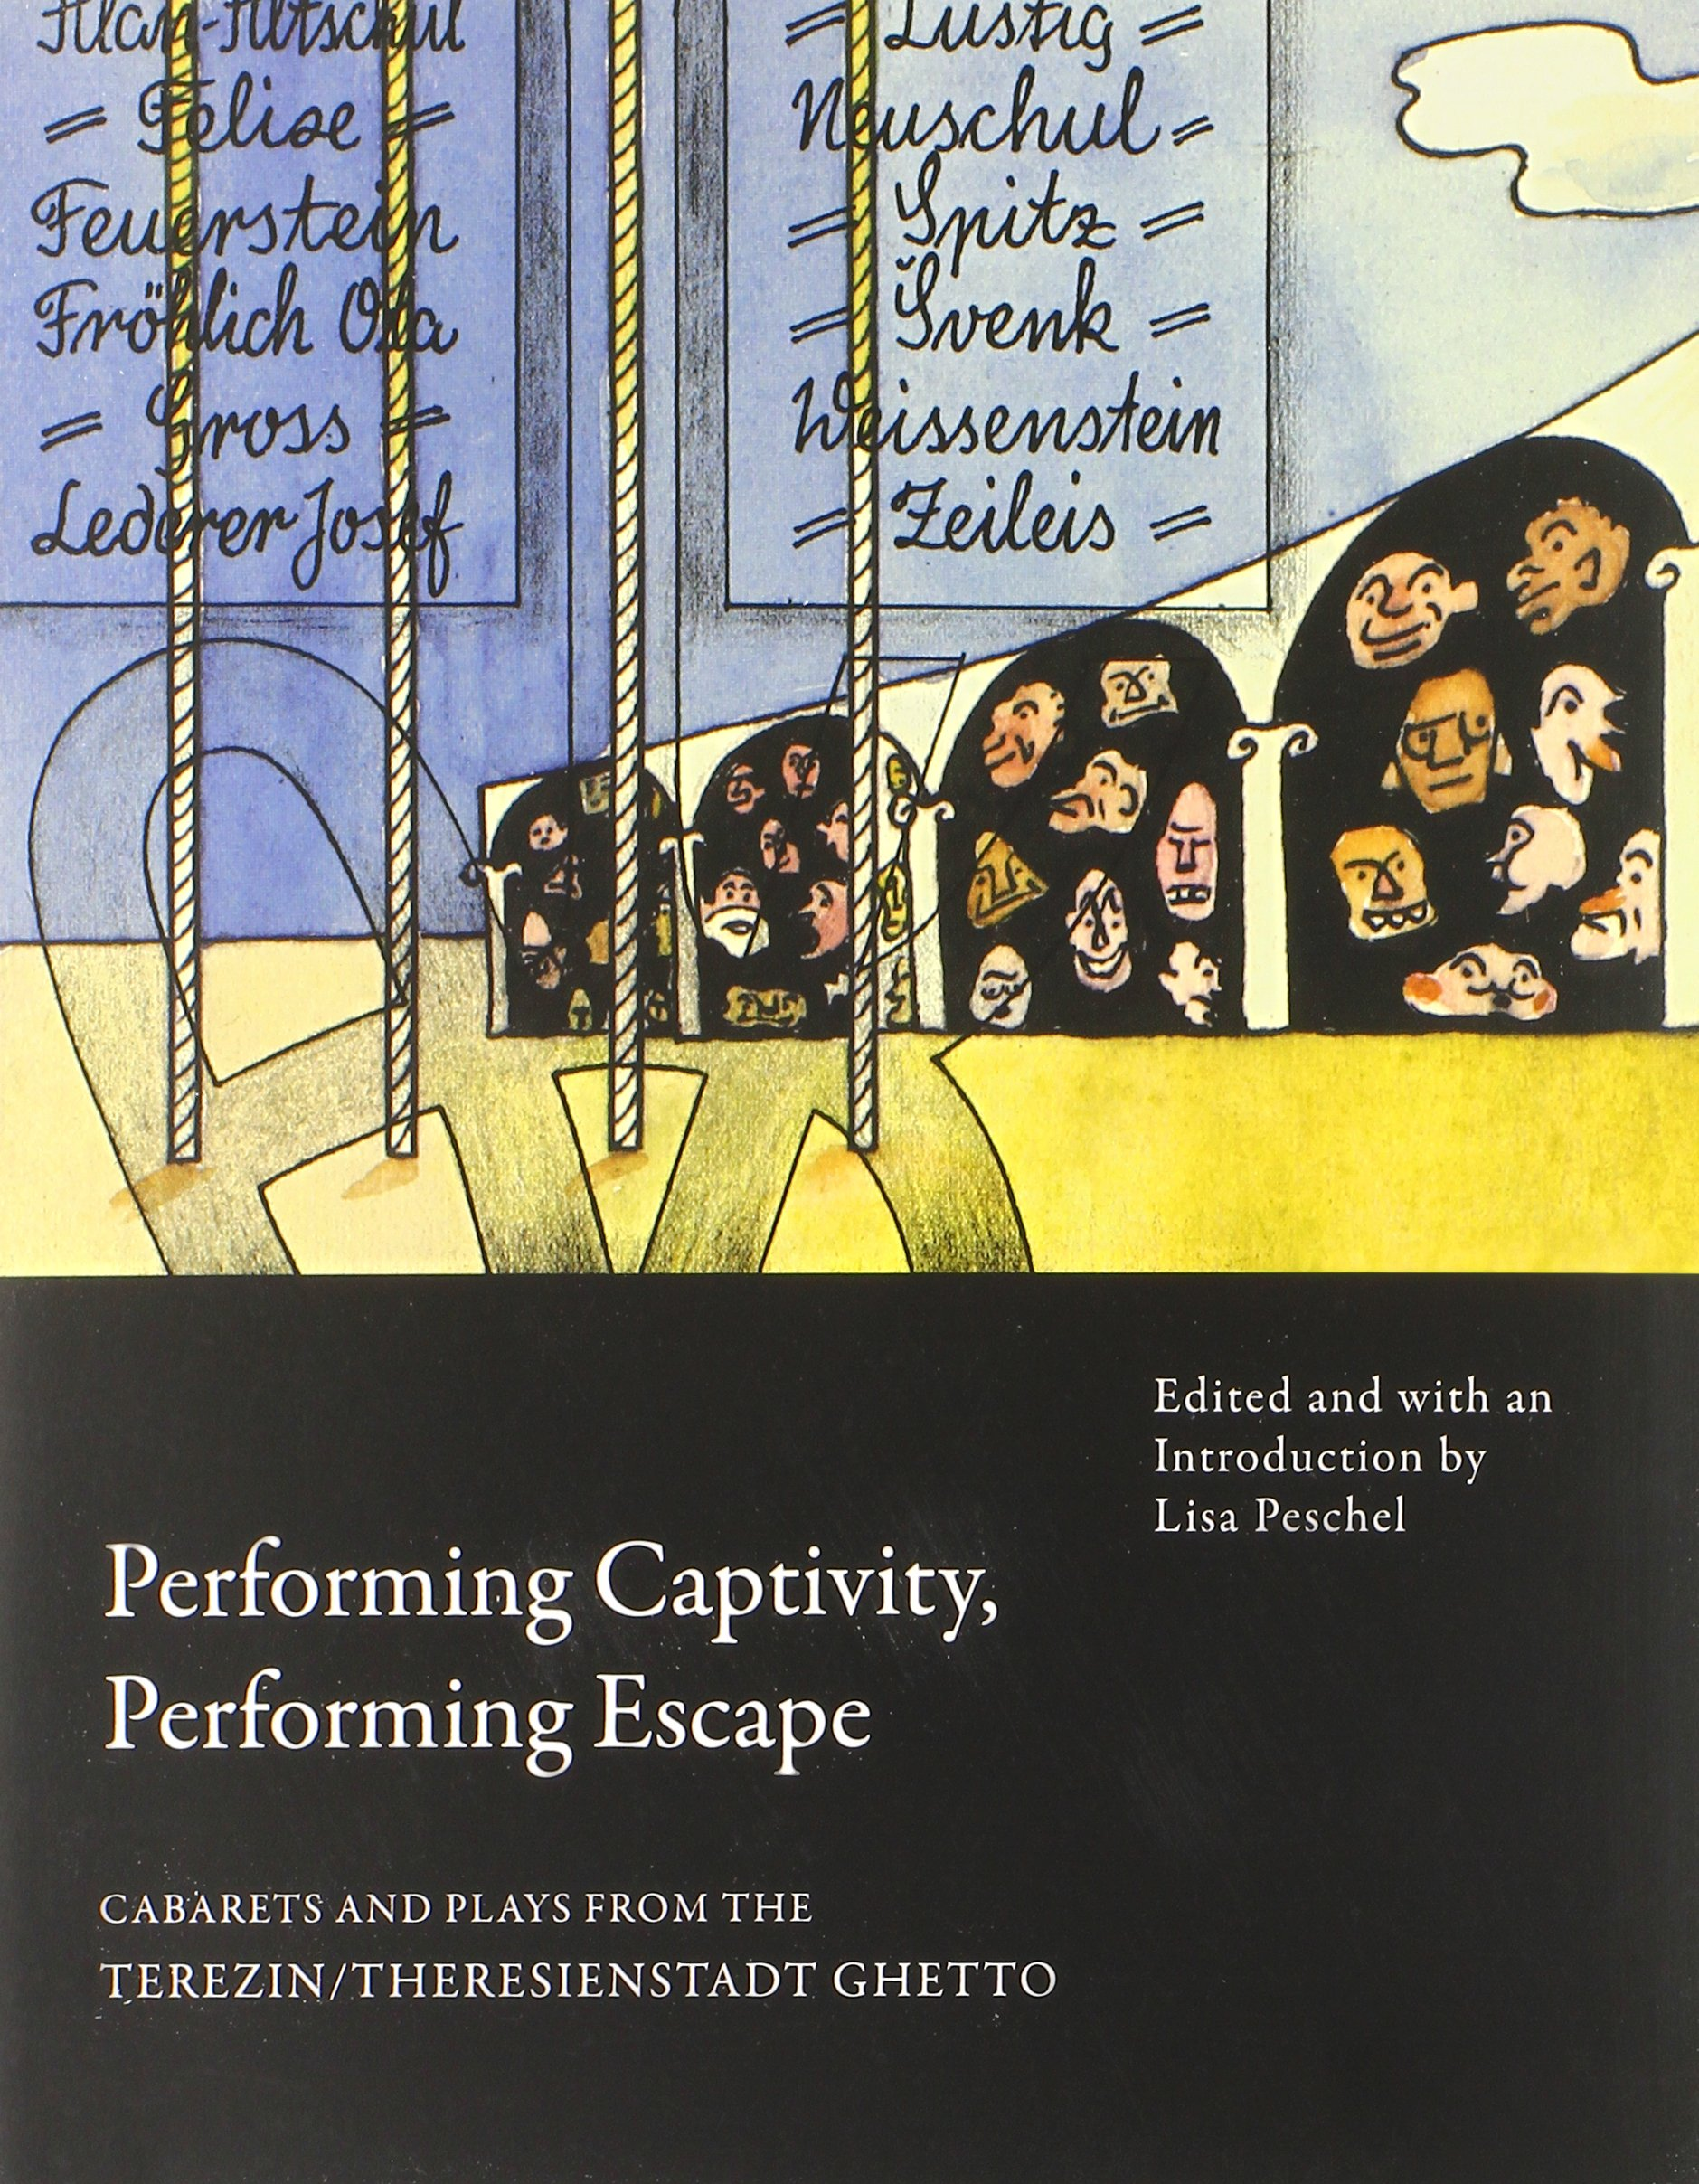 Download Performing Captivity, Performing Escape: Cabarets and Plays from the Terezin/Theresienstadt Ghetto (In Performance) ebook